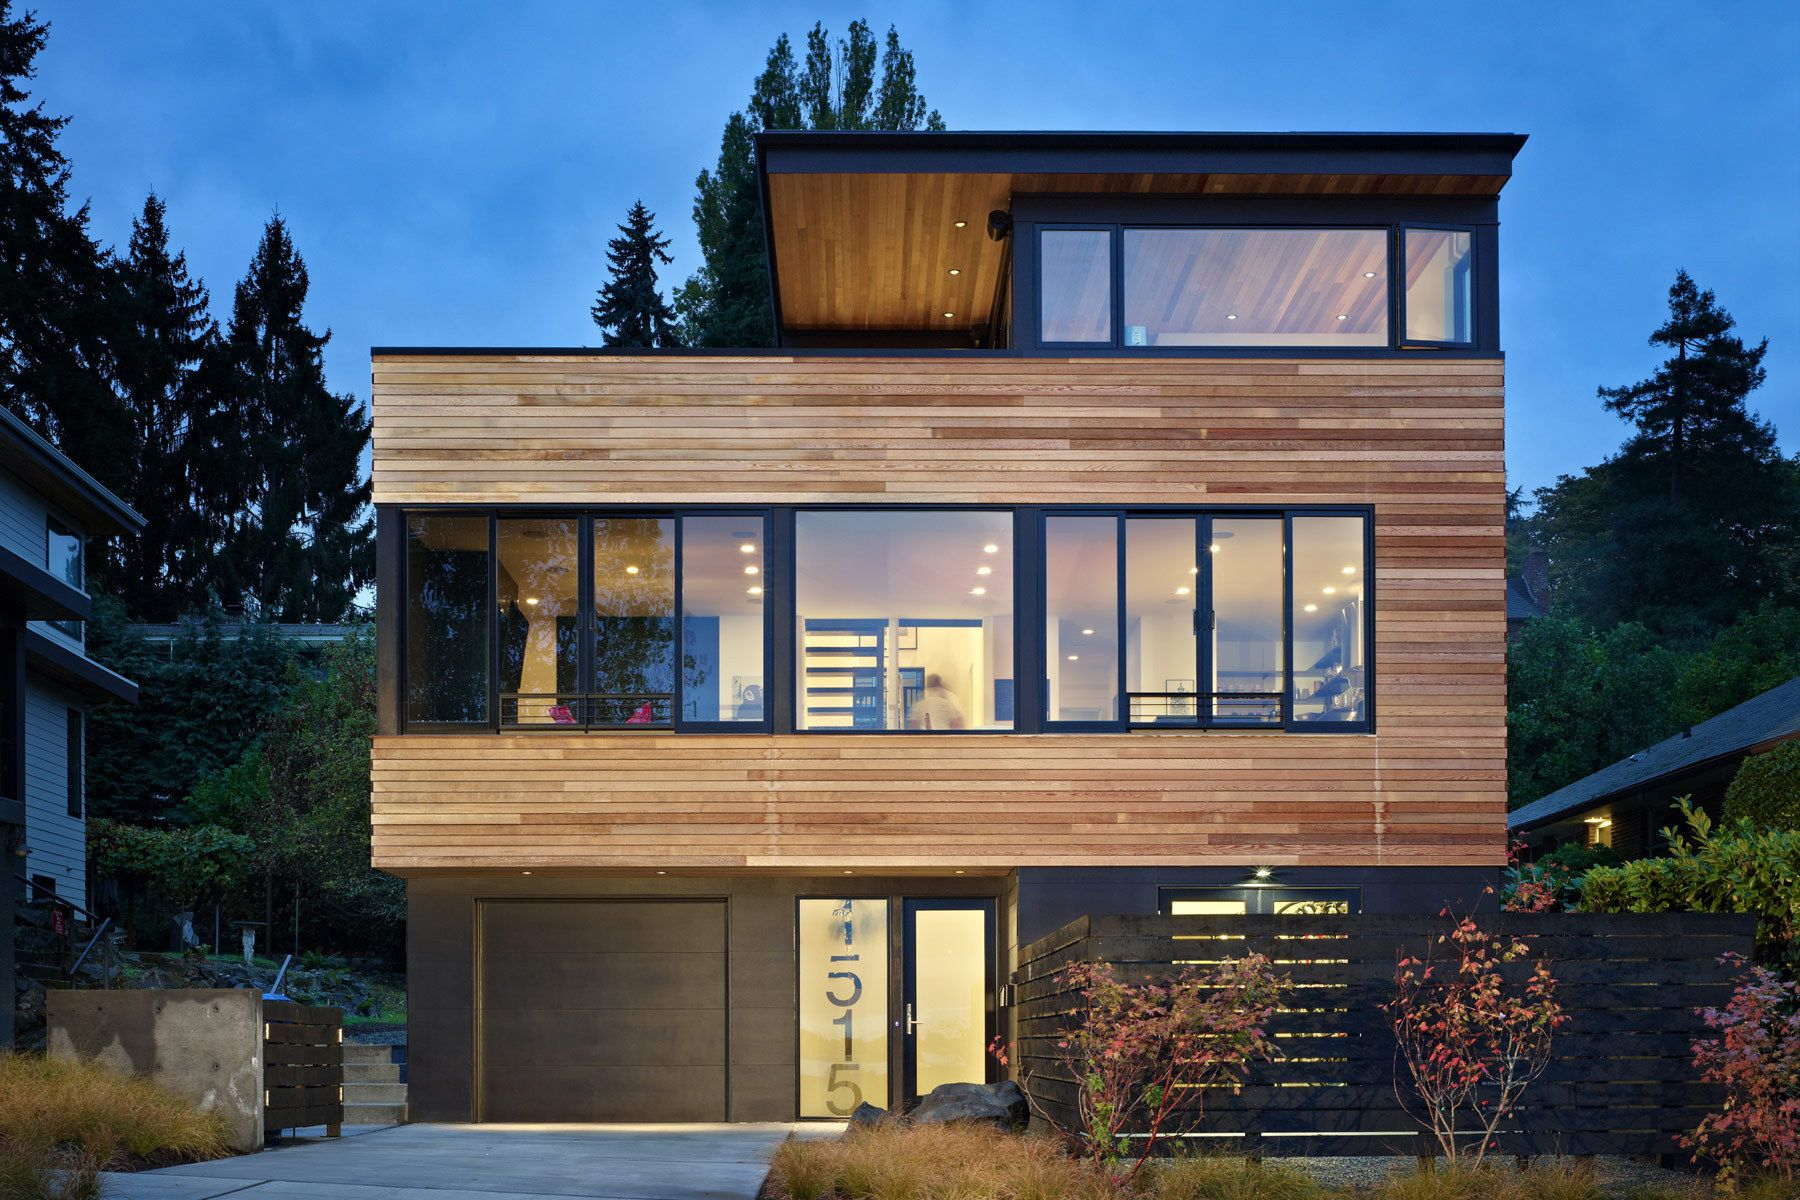 Superb 17 Best Ideas About Modern Roof Design On Pinterest Modern House Largest Home Design Picture Inspirations Pitcheantrous